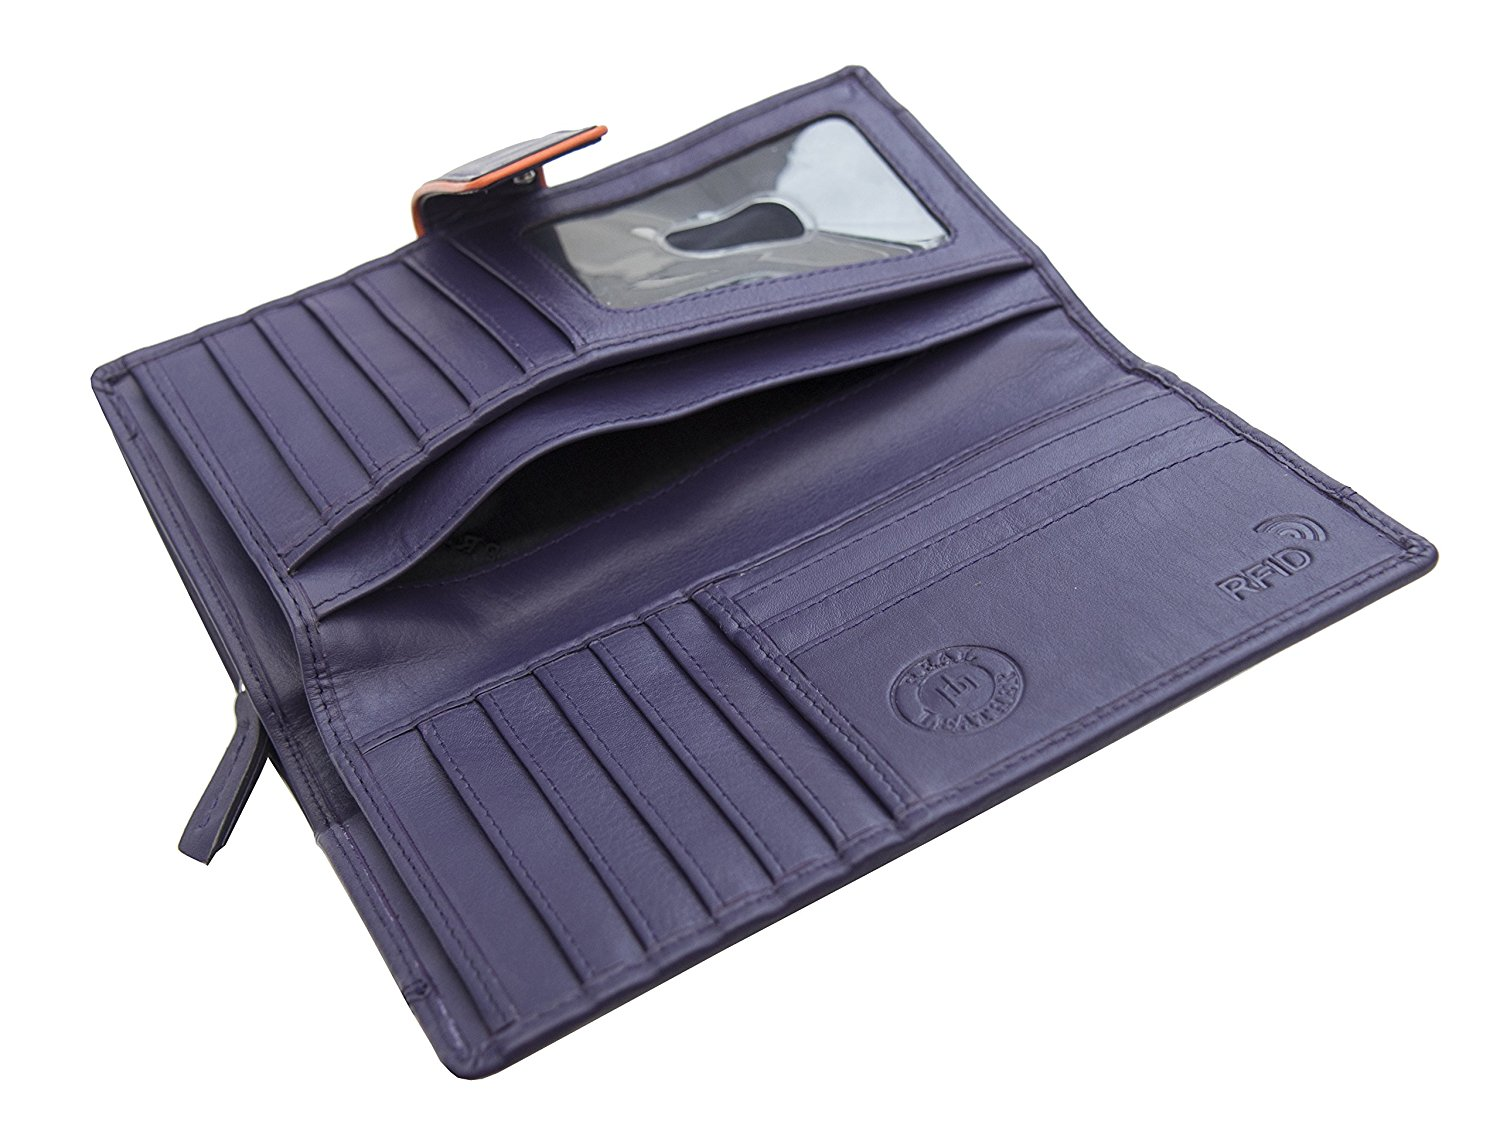 Femmes-Extra-Large-en-Cuir-Veritable-RFID-Bloquant-Organisateur-Clutch-Wallet-purse miniature 10